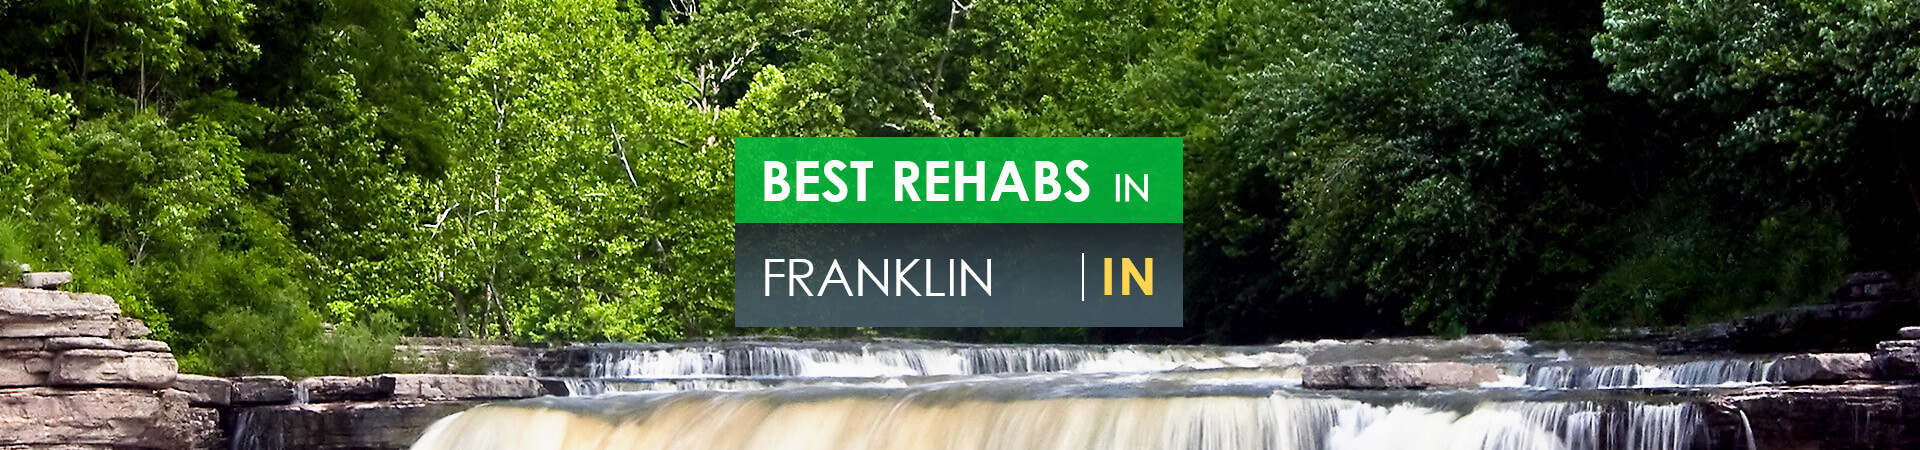 Best rehabs in Franklin, IN